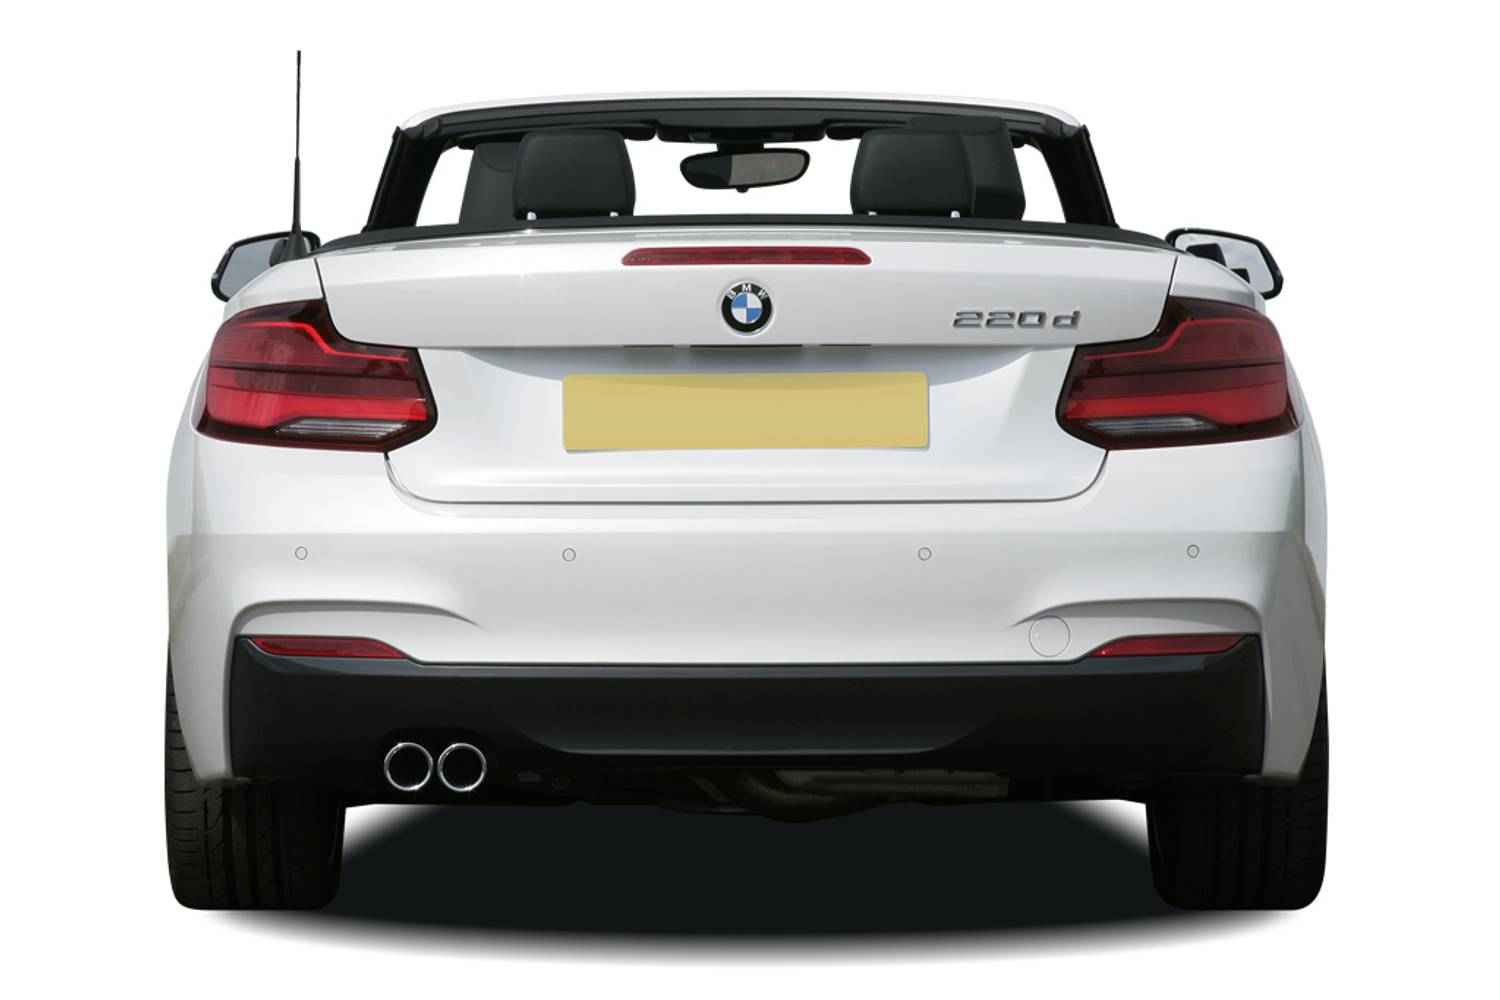 BMW 2 Series Convertible 2dr [Nav] Rear